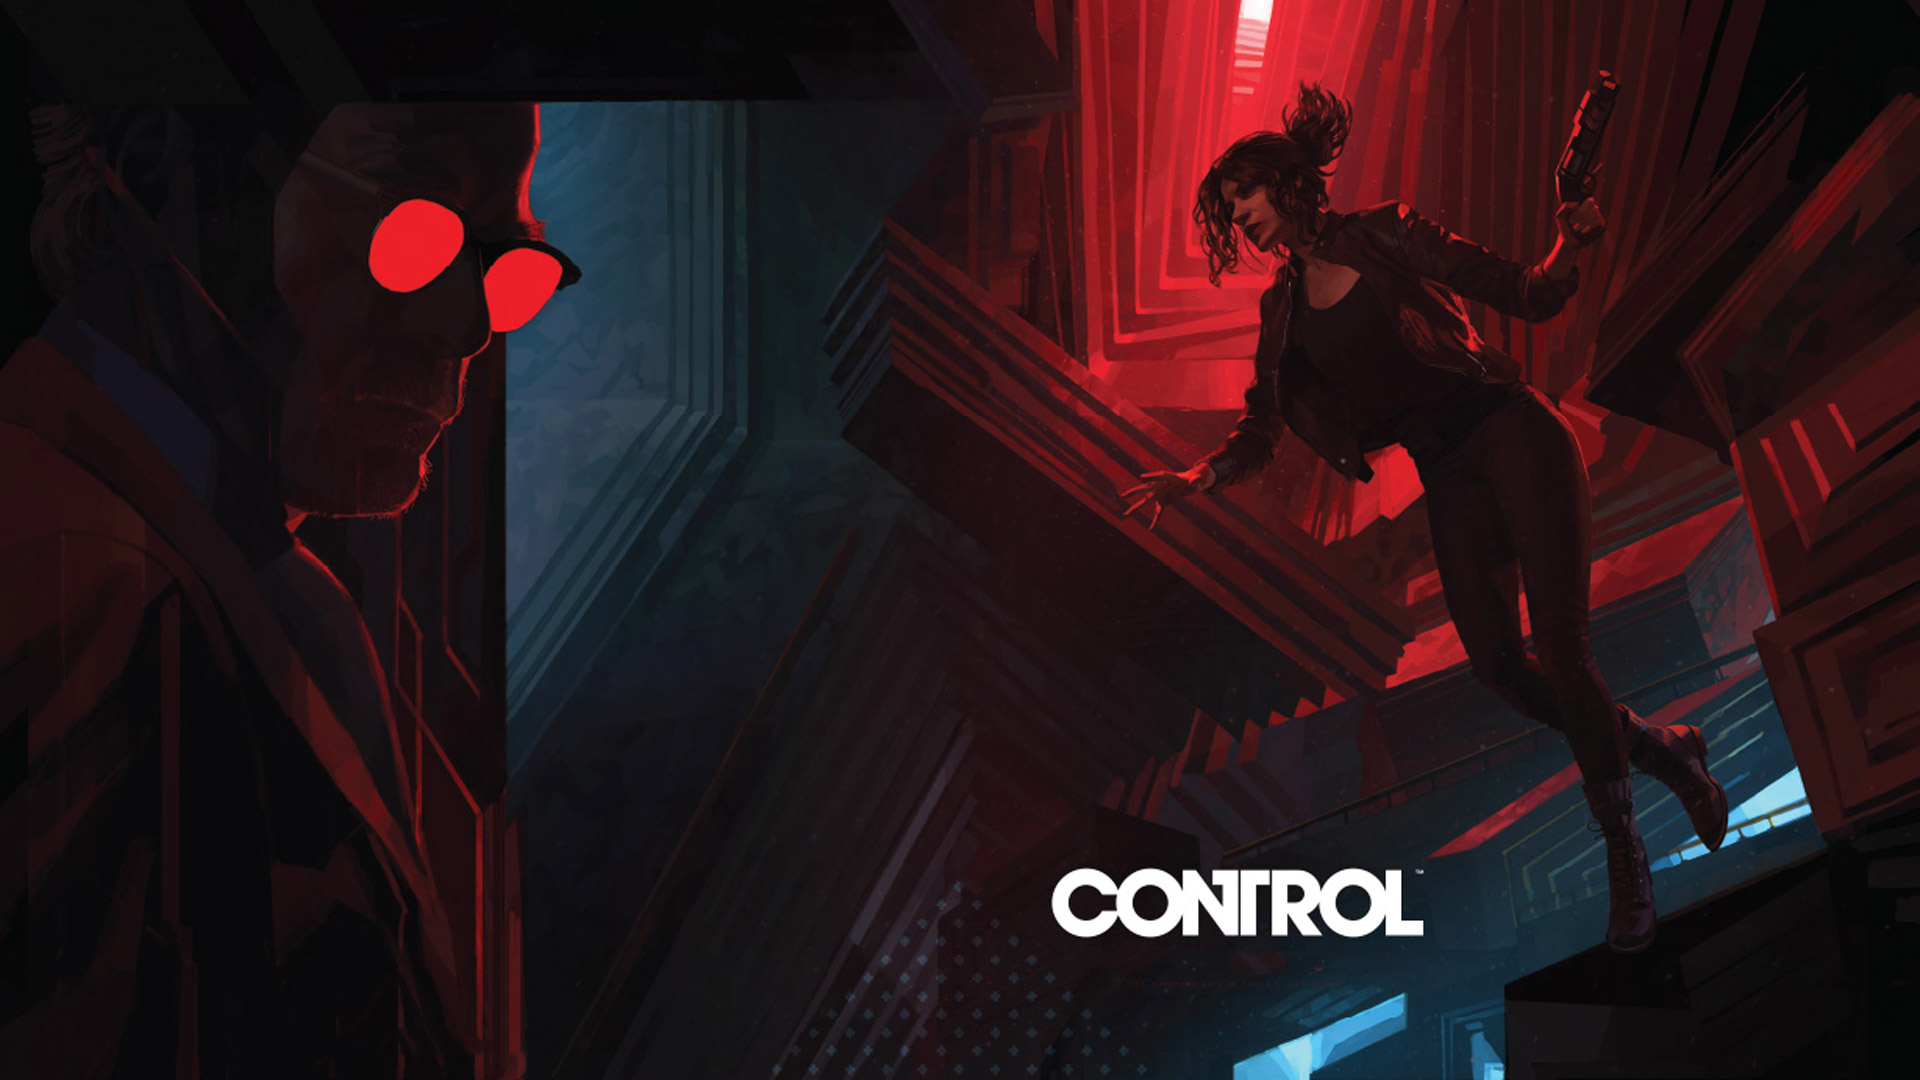 Free Control Wallpaper in 1920x1080